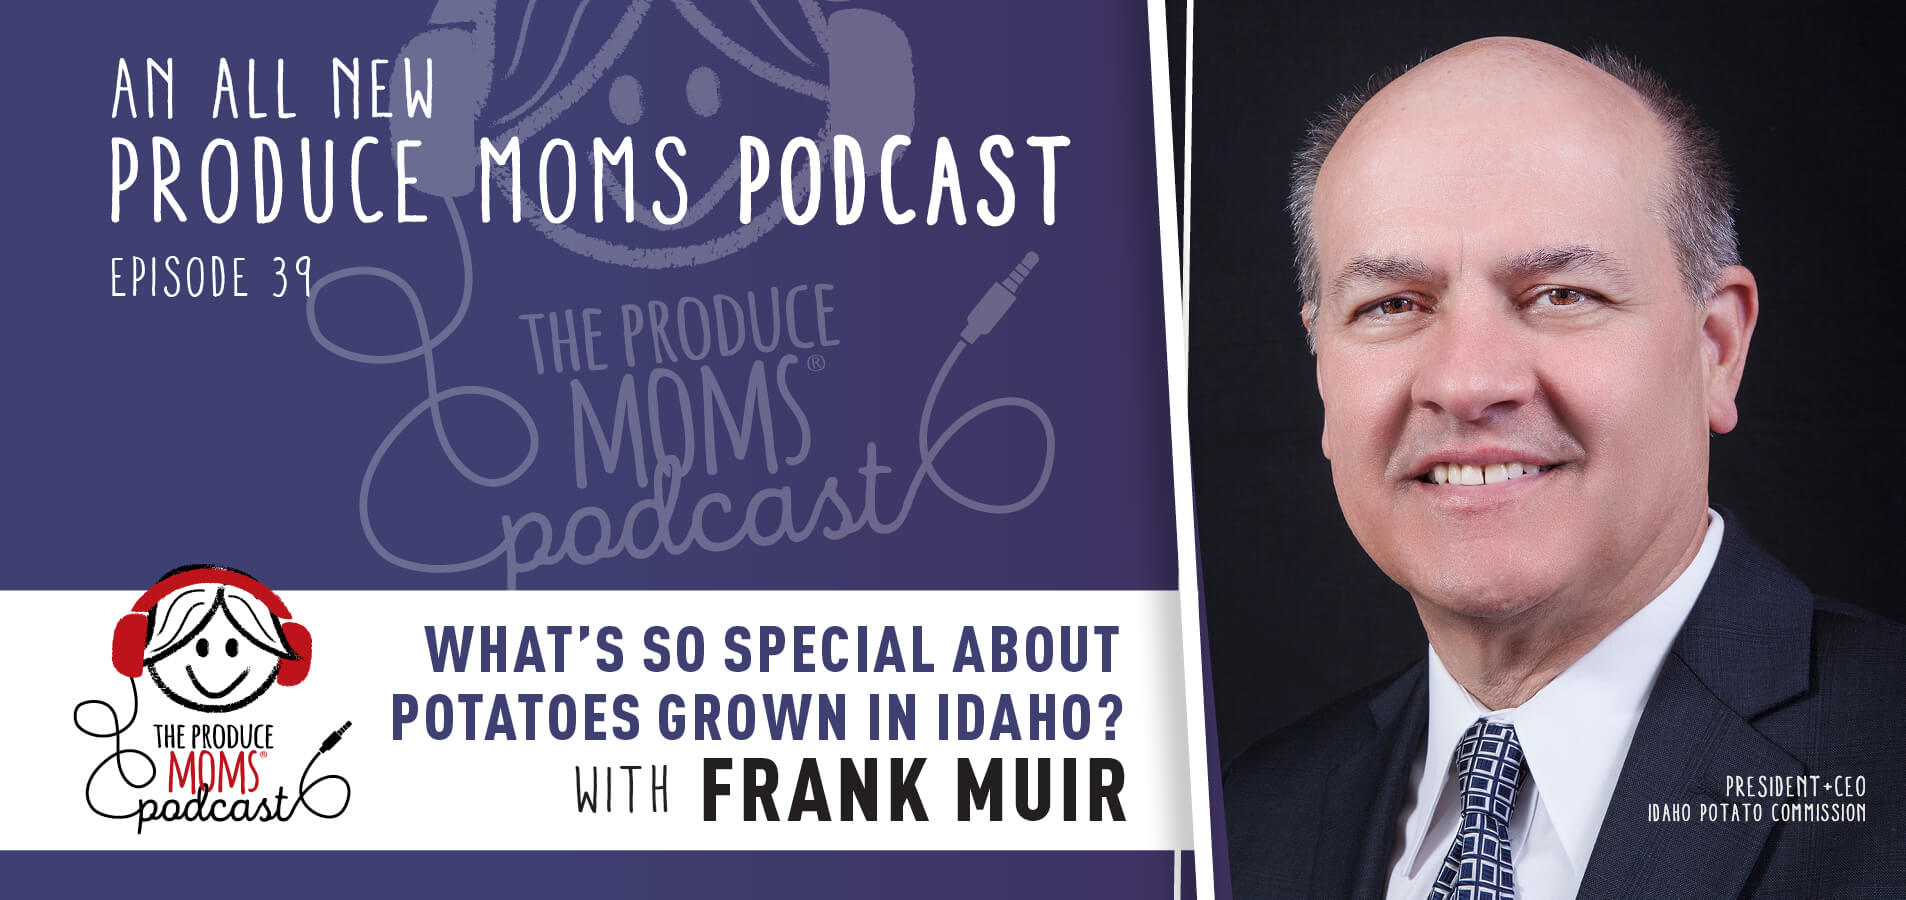 Episode 39: What's So Special About Potatoes Grown In Idaho?